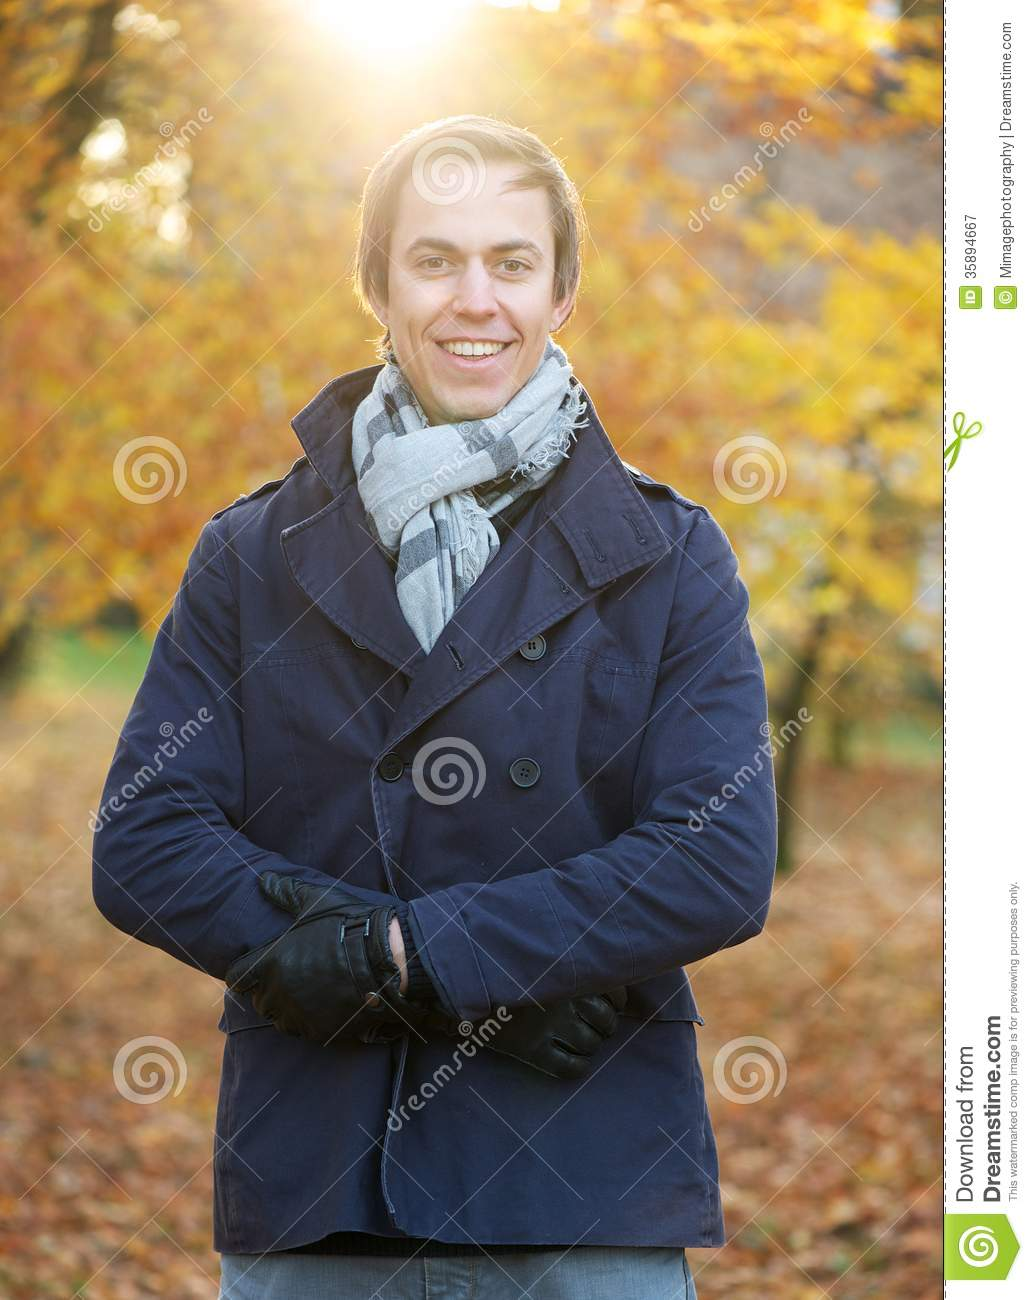 Portrait of a happy man standing outside on a fall day